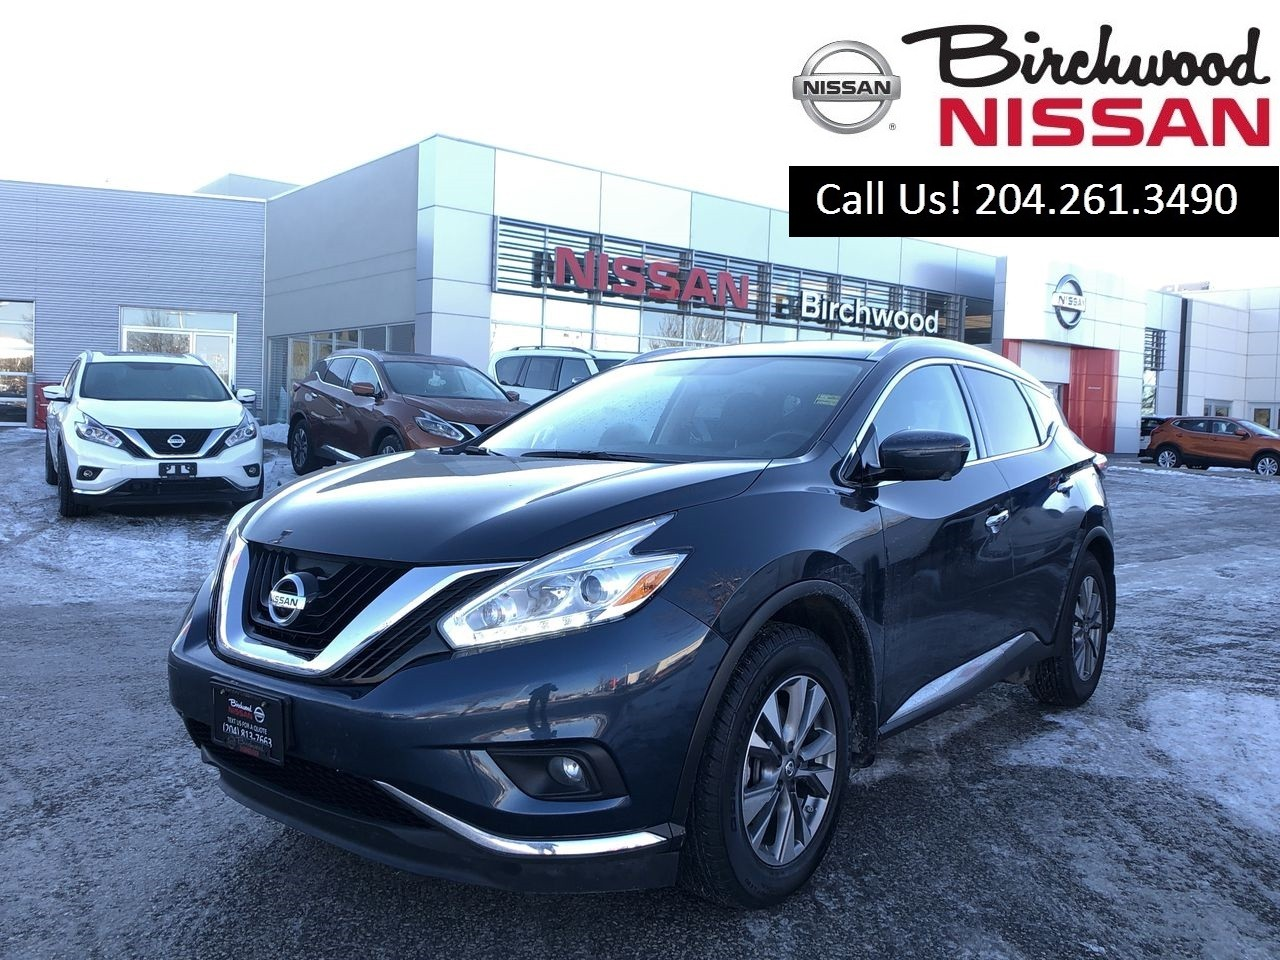 2016 Nissan Murano SL Bought And Serviced At Birchwood Nissan! SUV